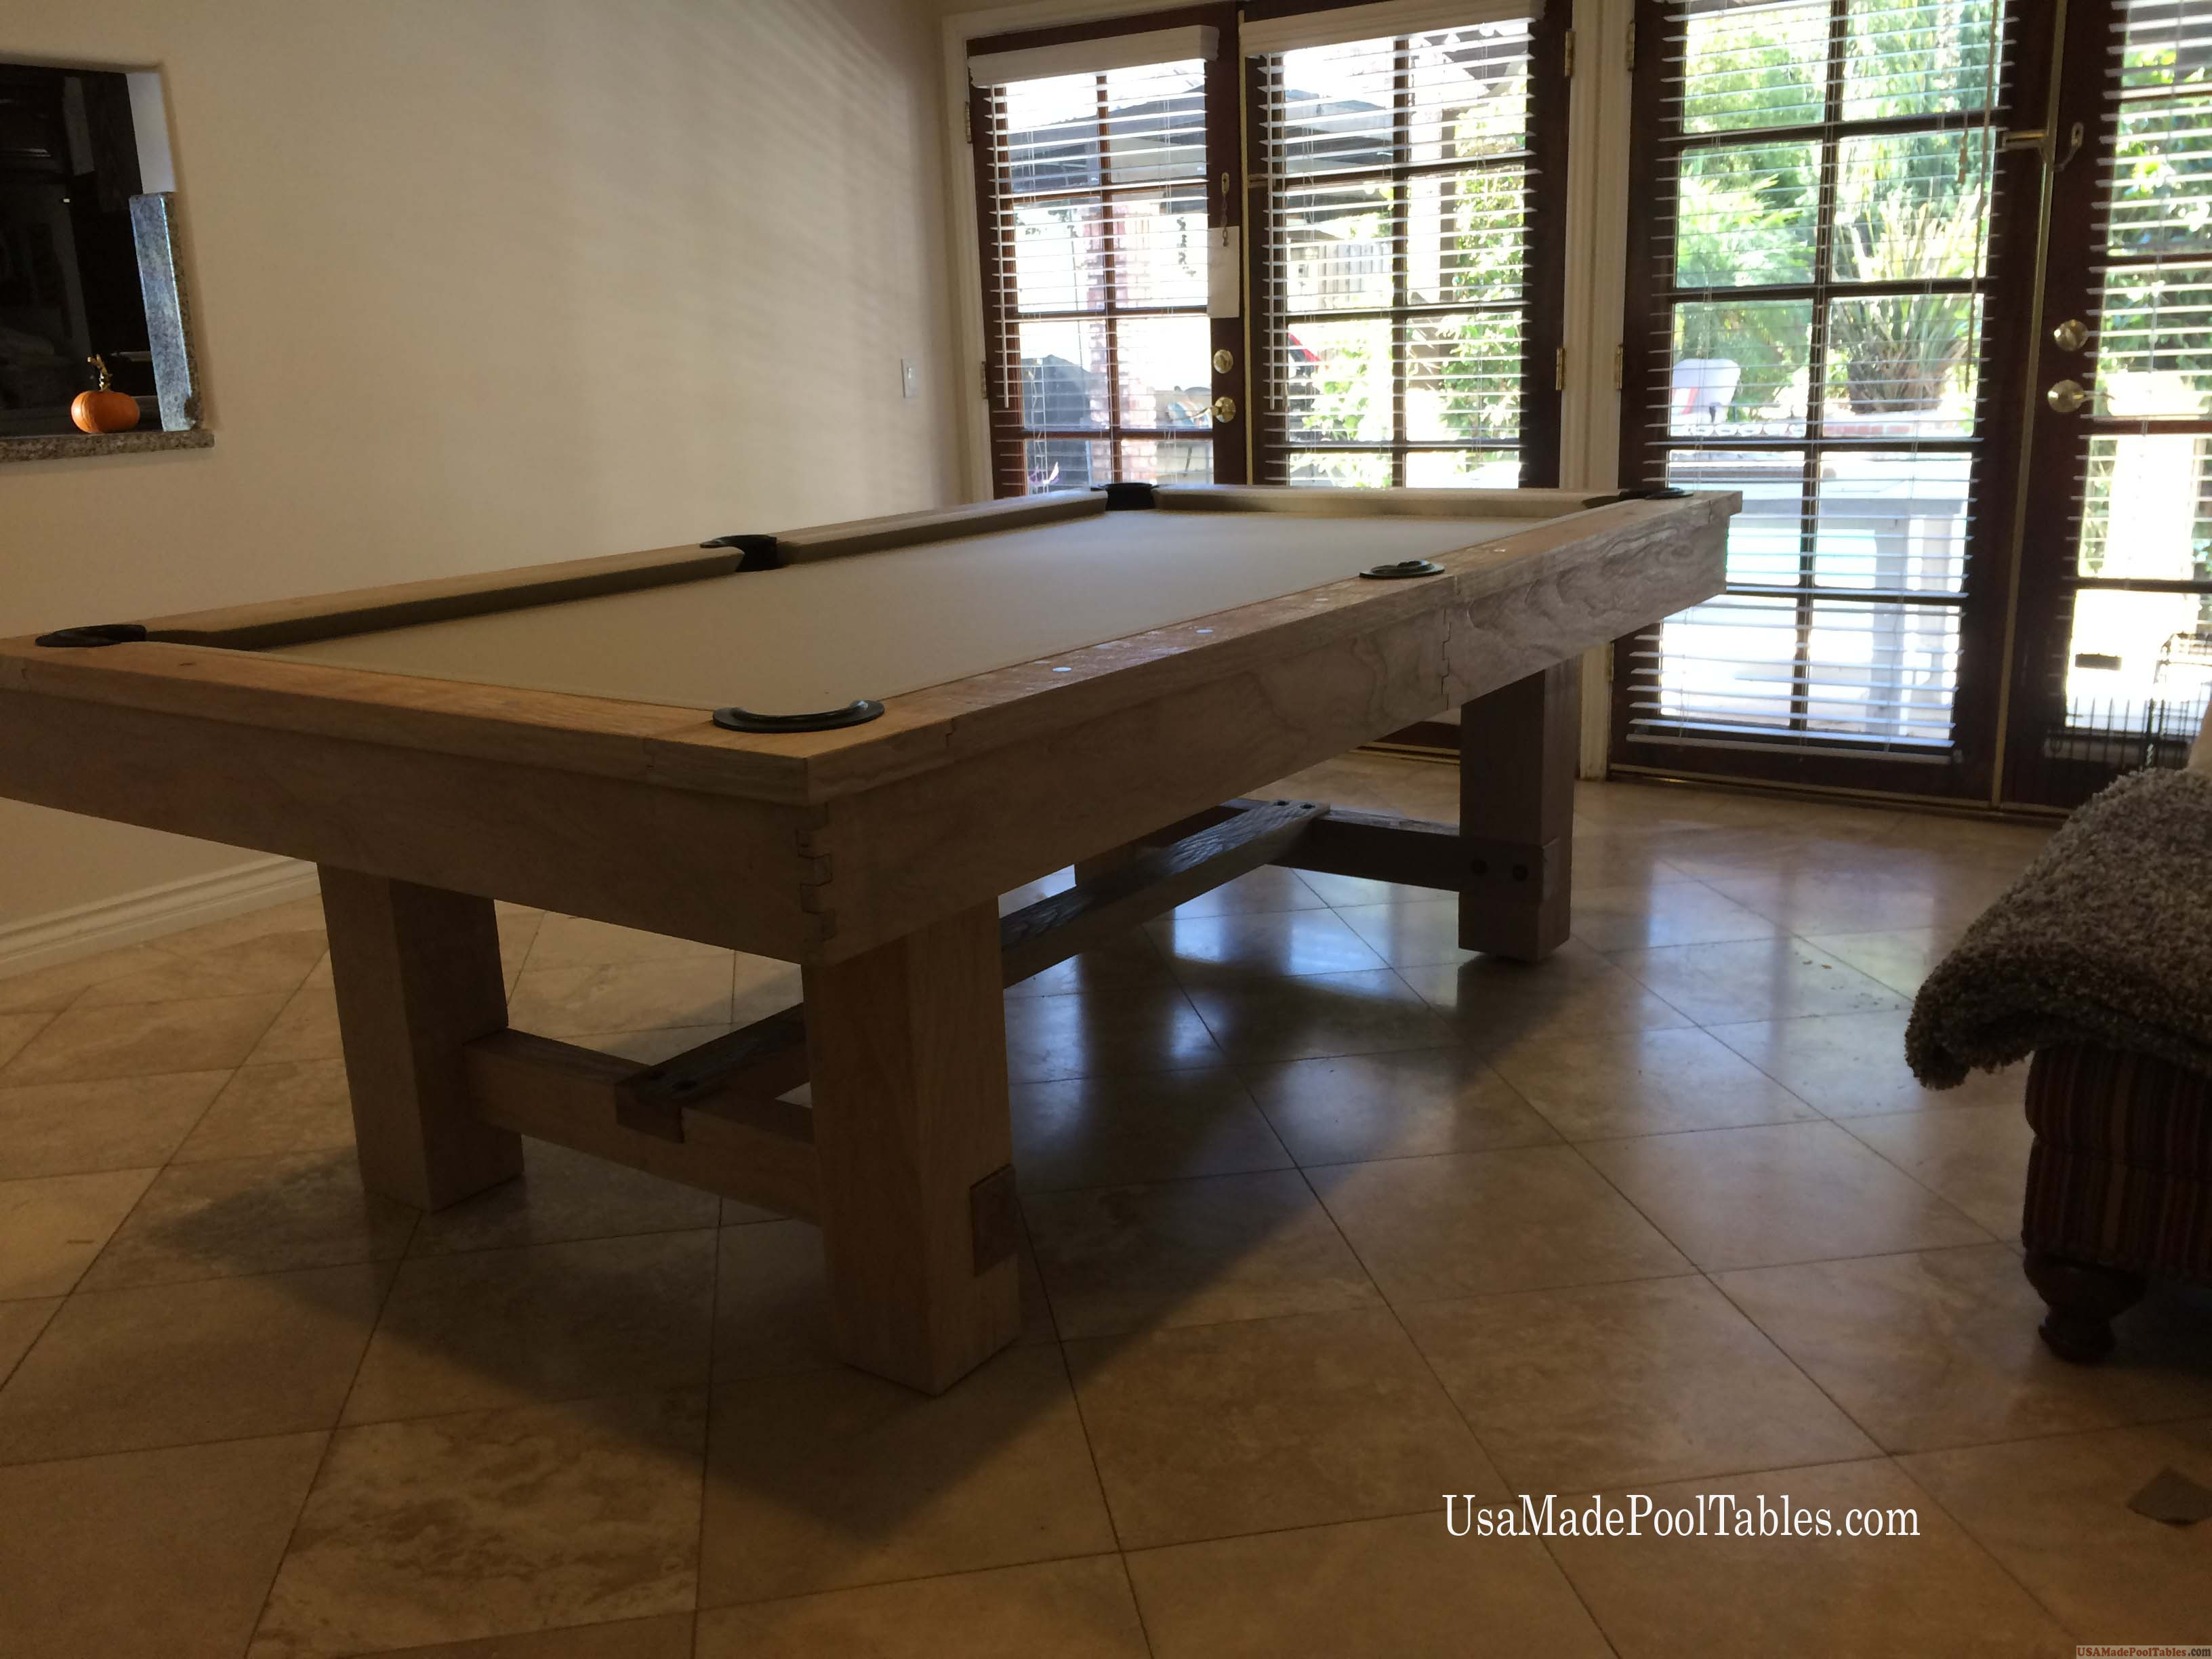 RENO POOL TABLES RUSTIC POOL TABLES POOL TABLES BILLIARDS - Reno pool table